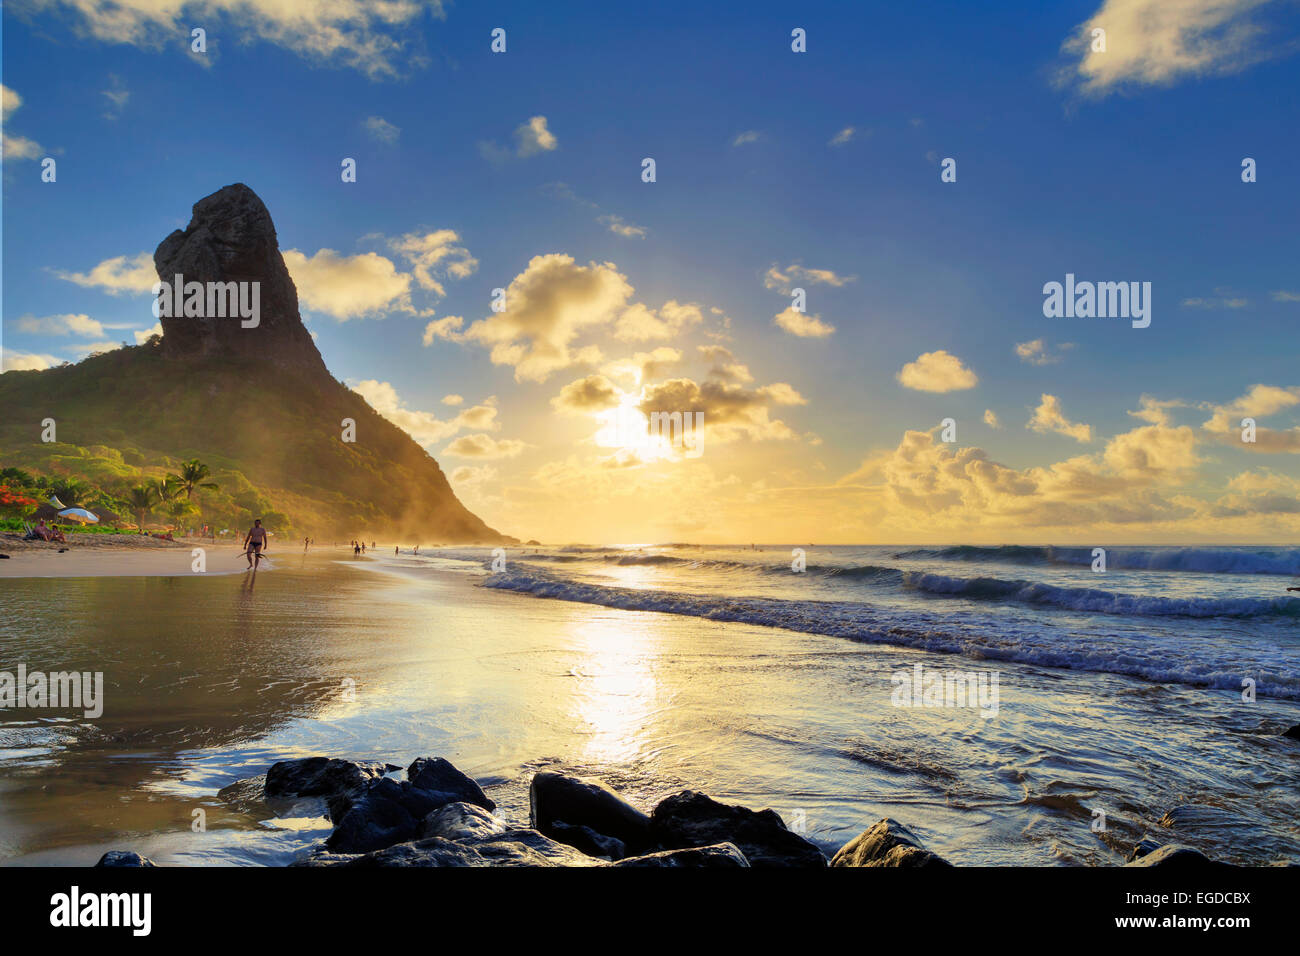 Brazil, Fernando de Noronha, Conceicao beach with Morro Pico mountain in the background - Stock Image